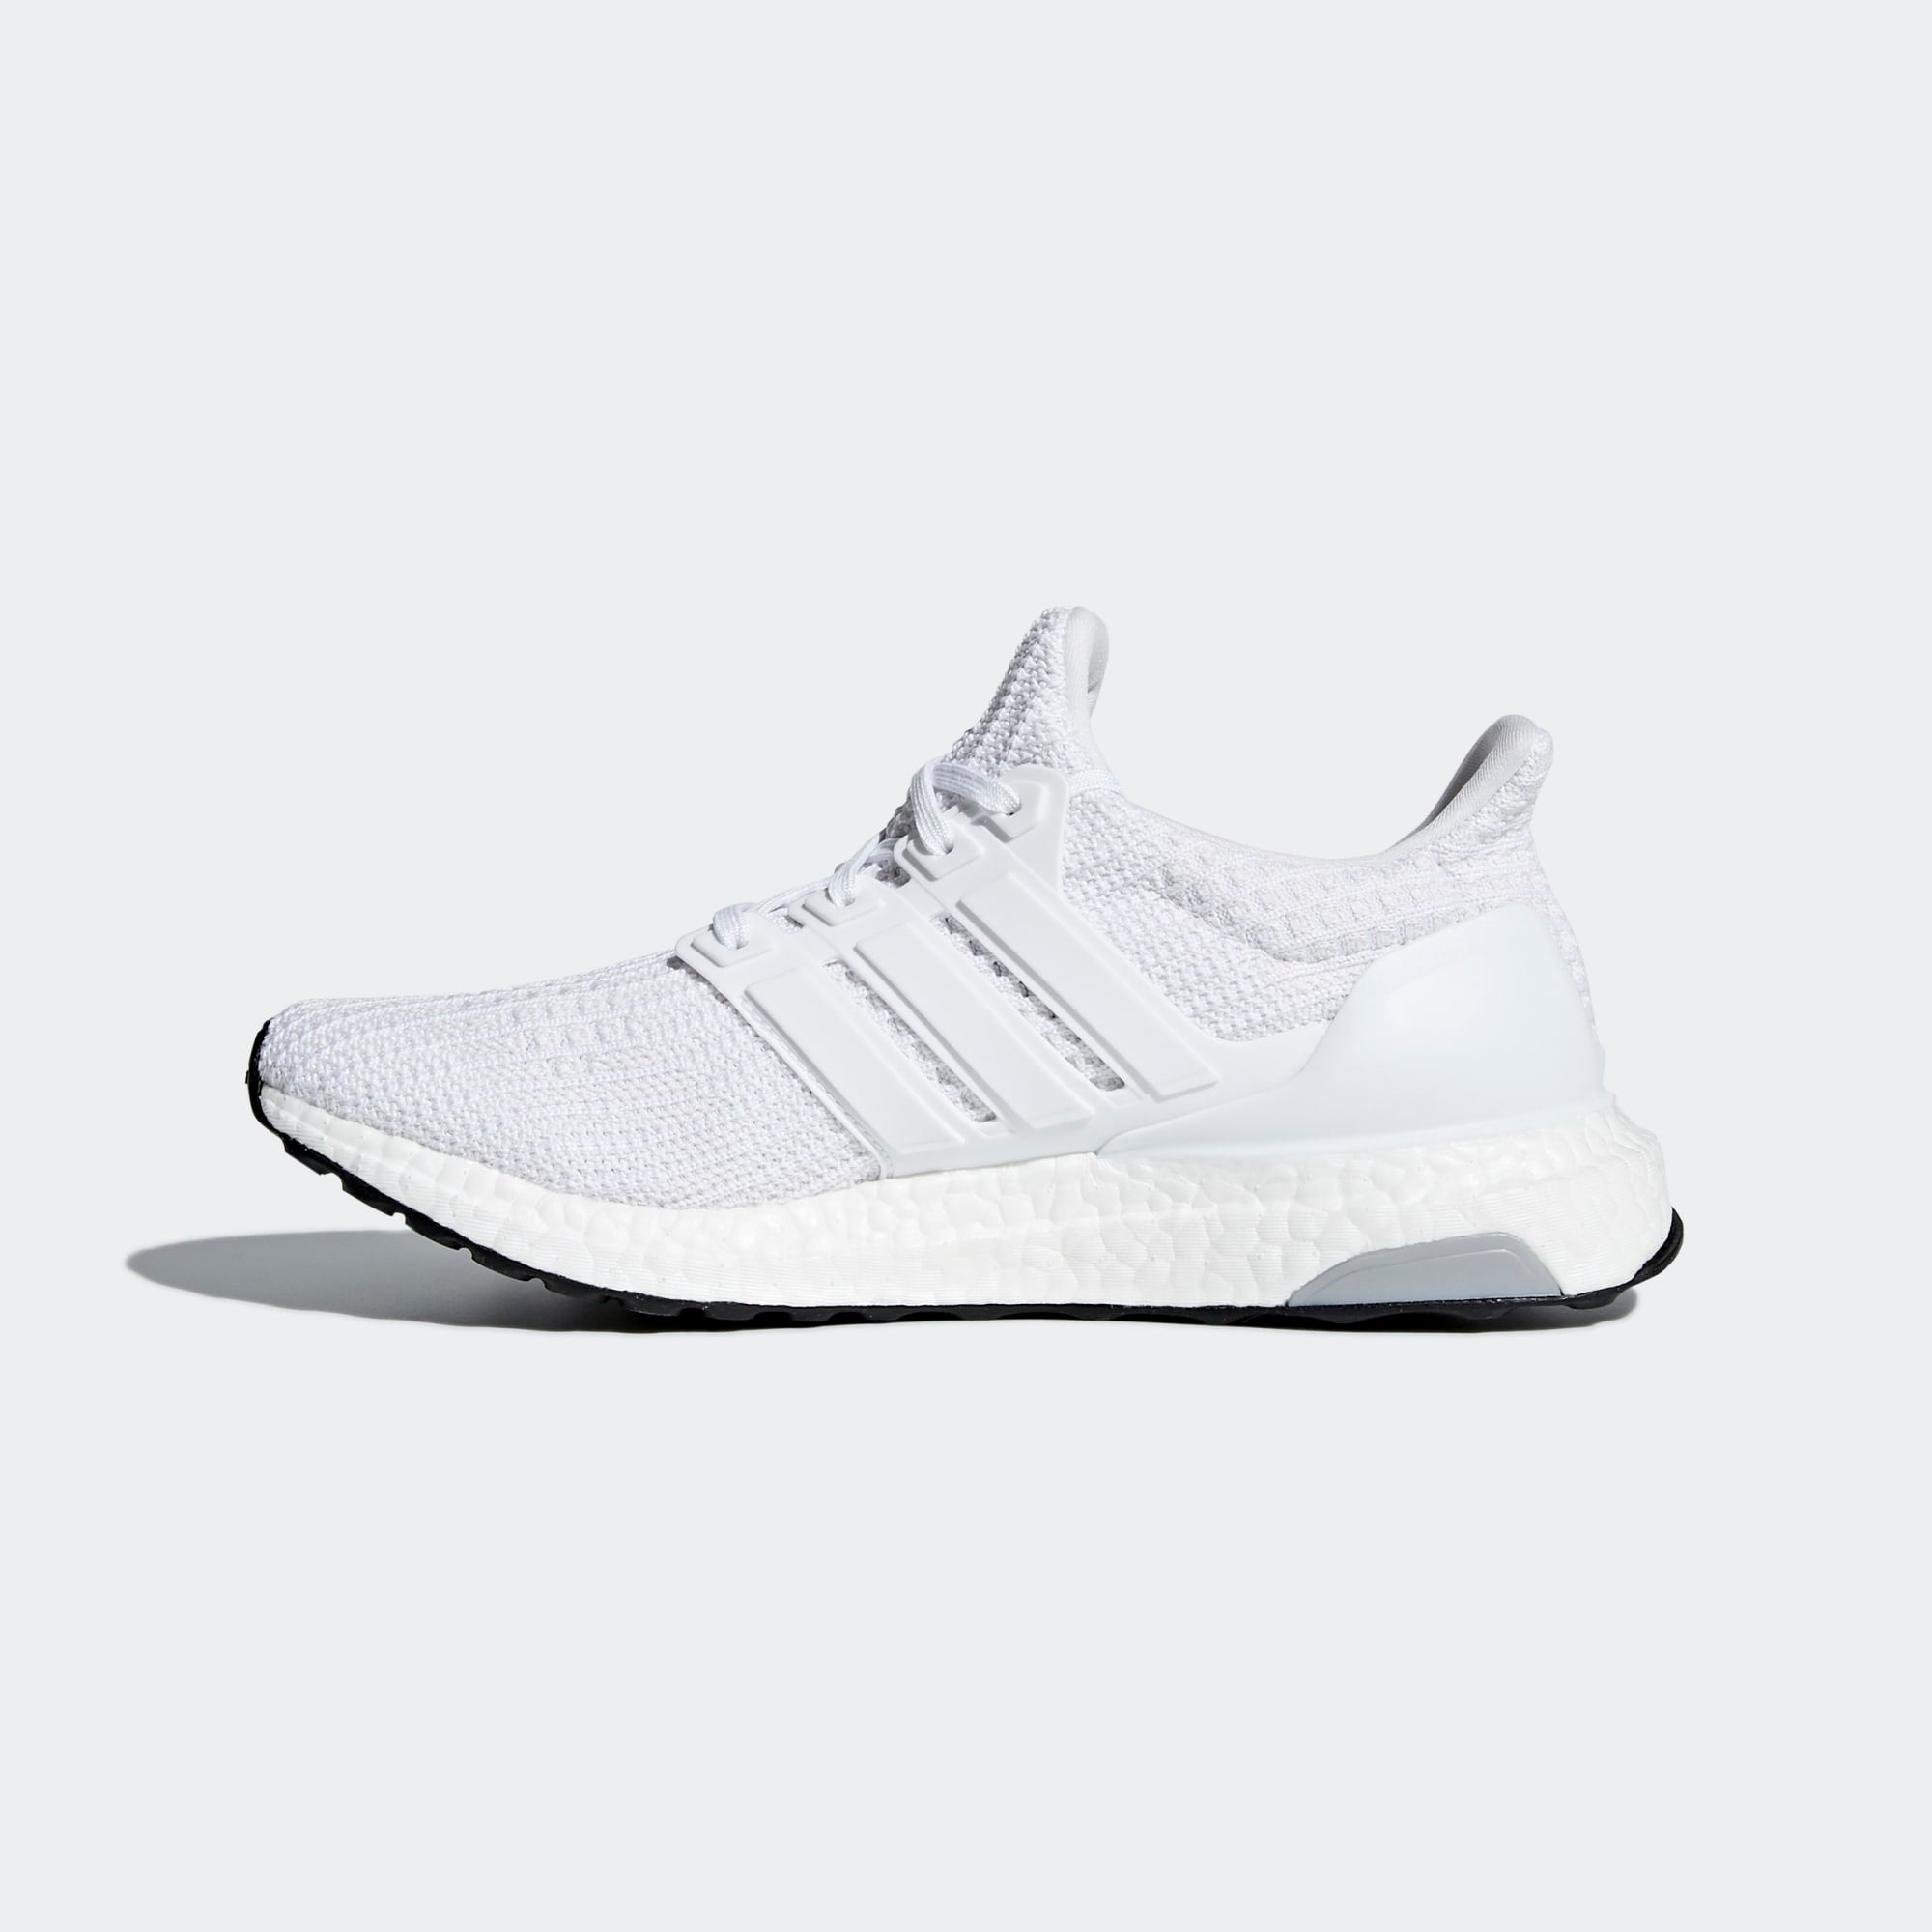 ADIDAS W'S FOOTWEAR W ULTRABOOST - CLOUD WHITE/CLOUD WHITE